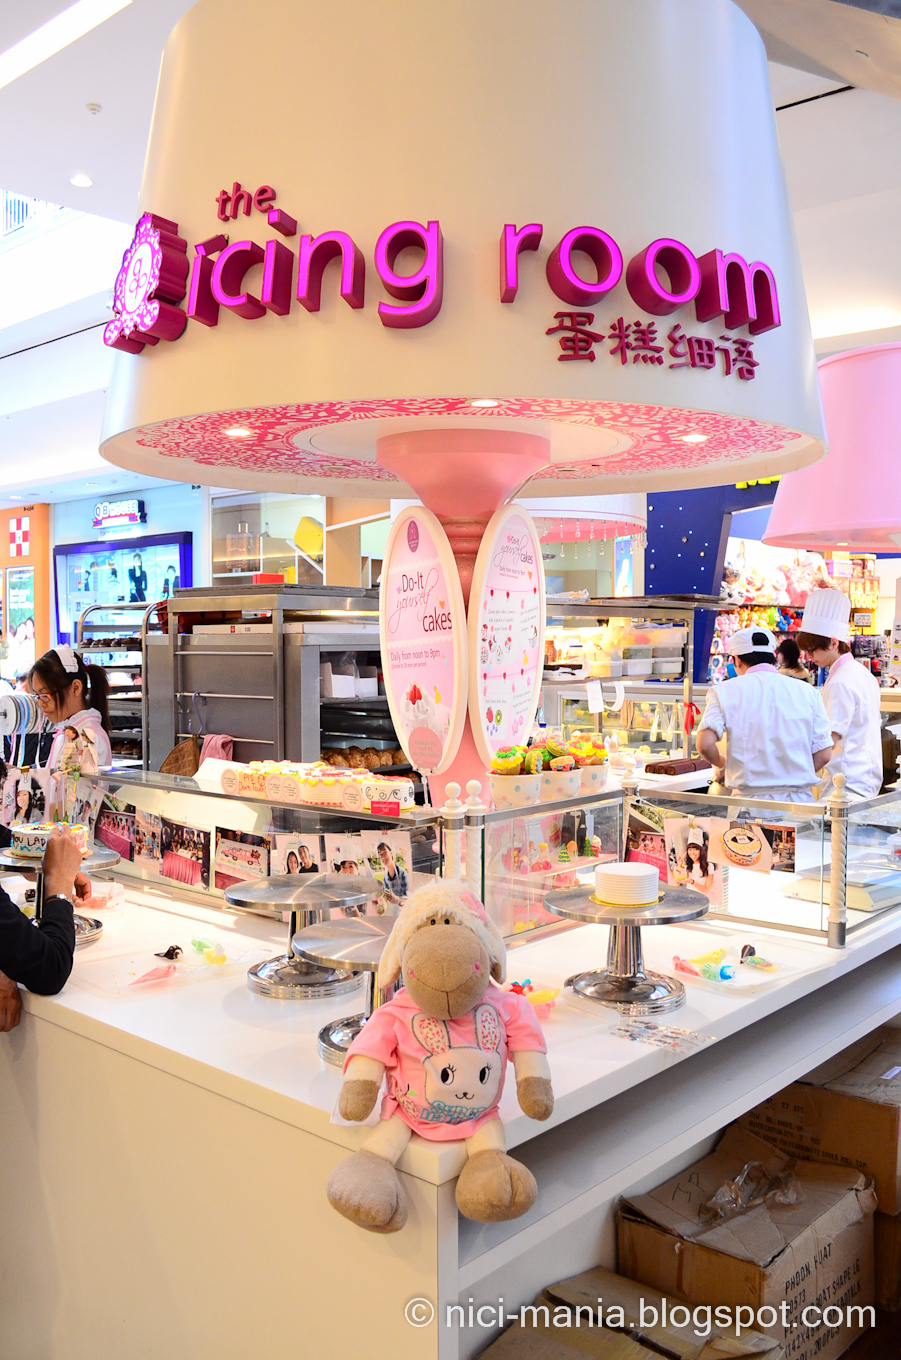 Nici mania i love nici plush toys the icing room diy cake the icing room is a specialty cake shop that offers design it yourself diy cake decorative services but why are we here solutioingenieria Images